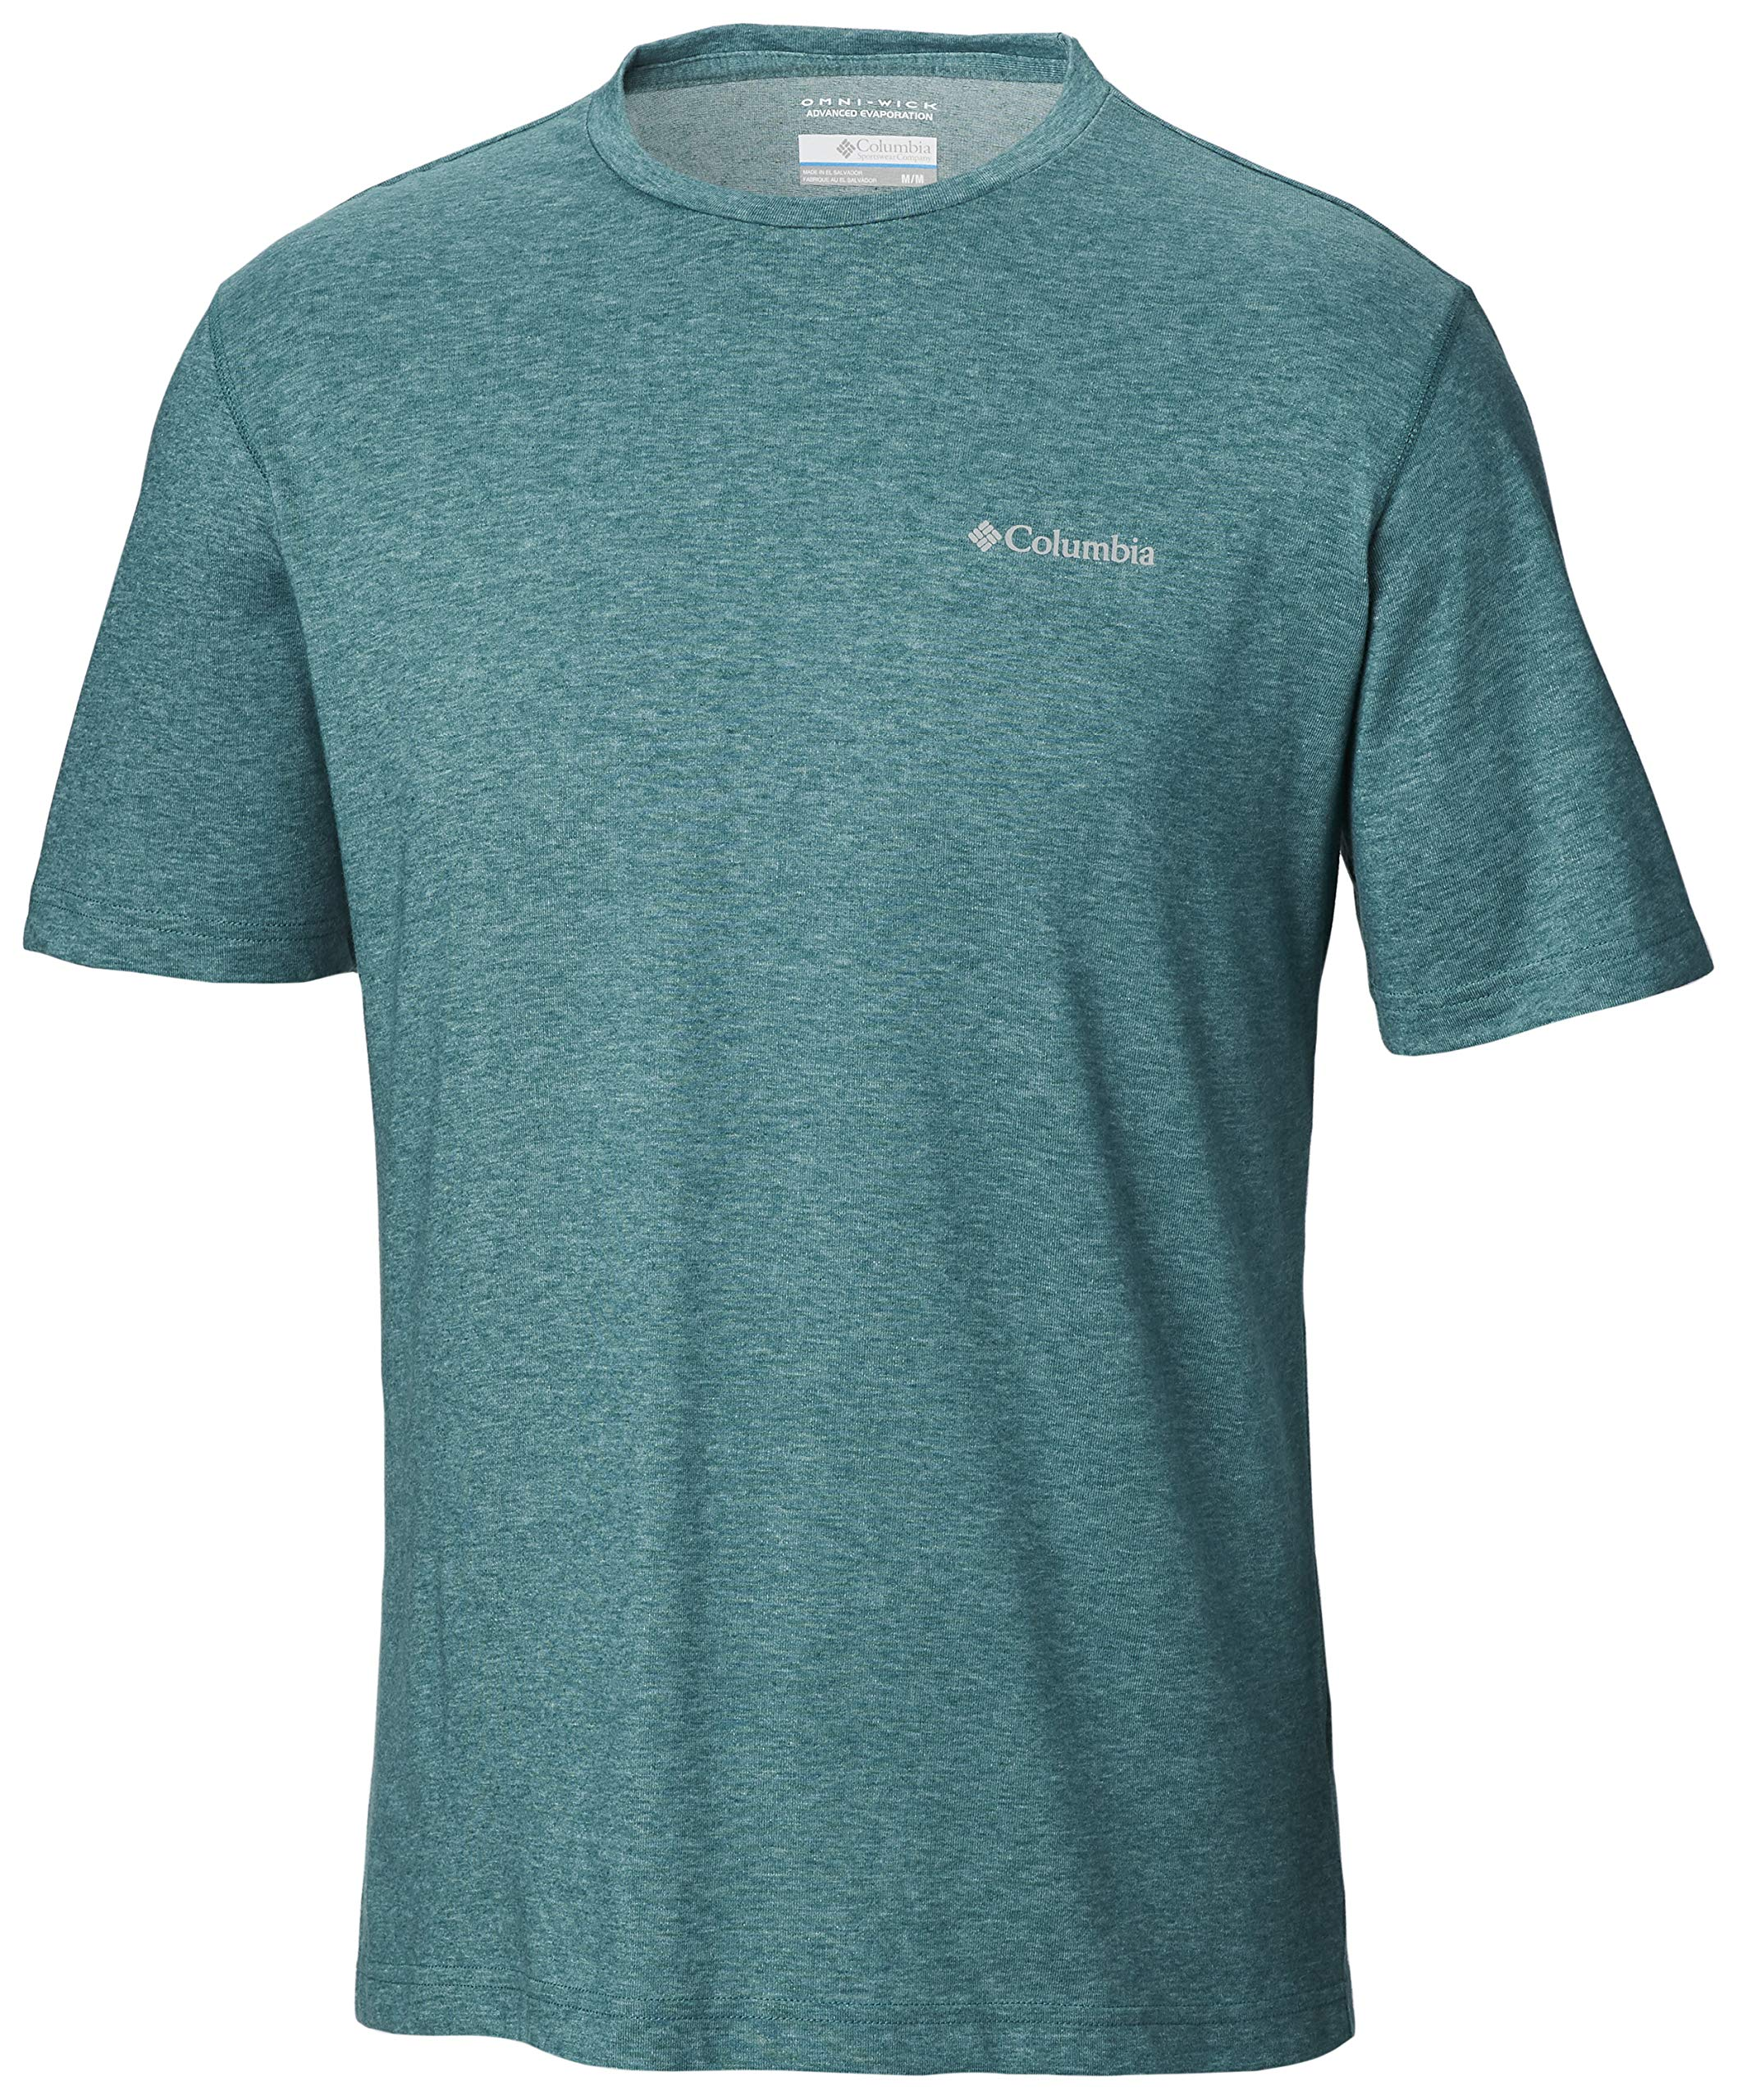 Columbia Men's Thistletown Park Crew Shirt,  Pine Green Heather,Small